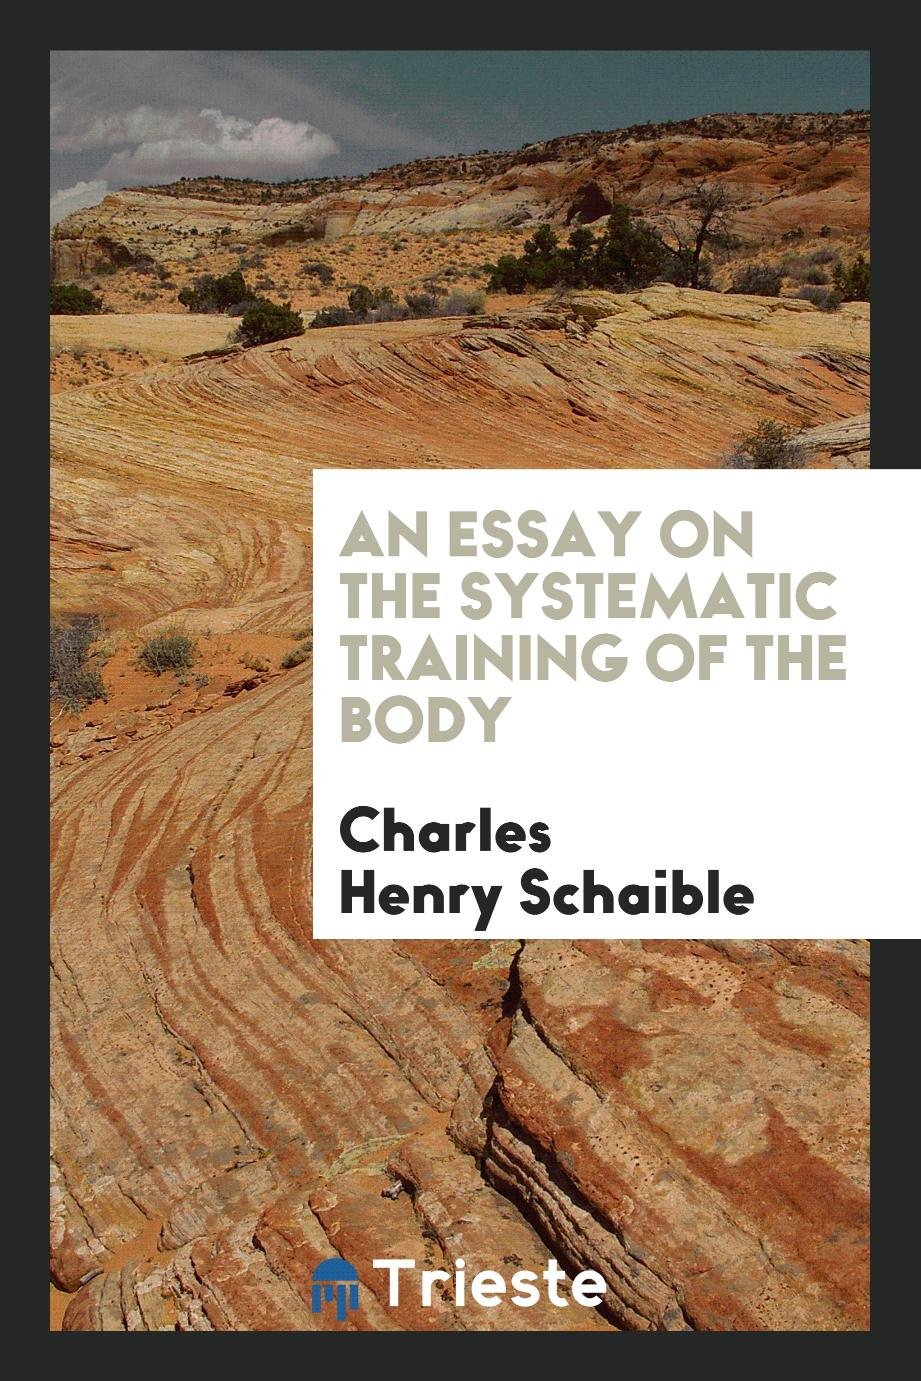 An Essay on the Systematic Training of the Body